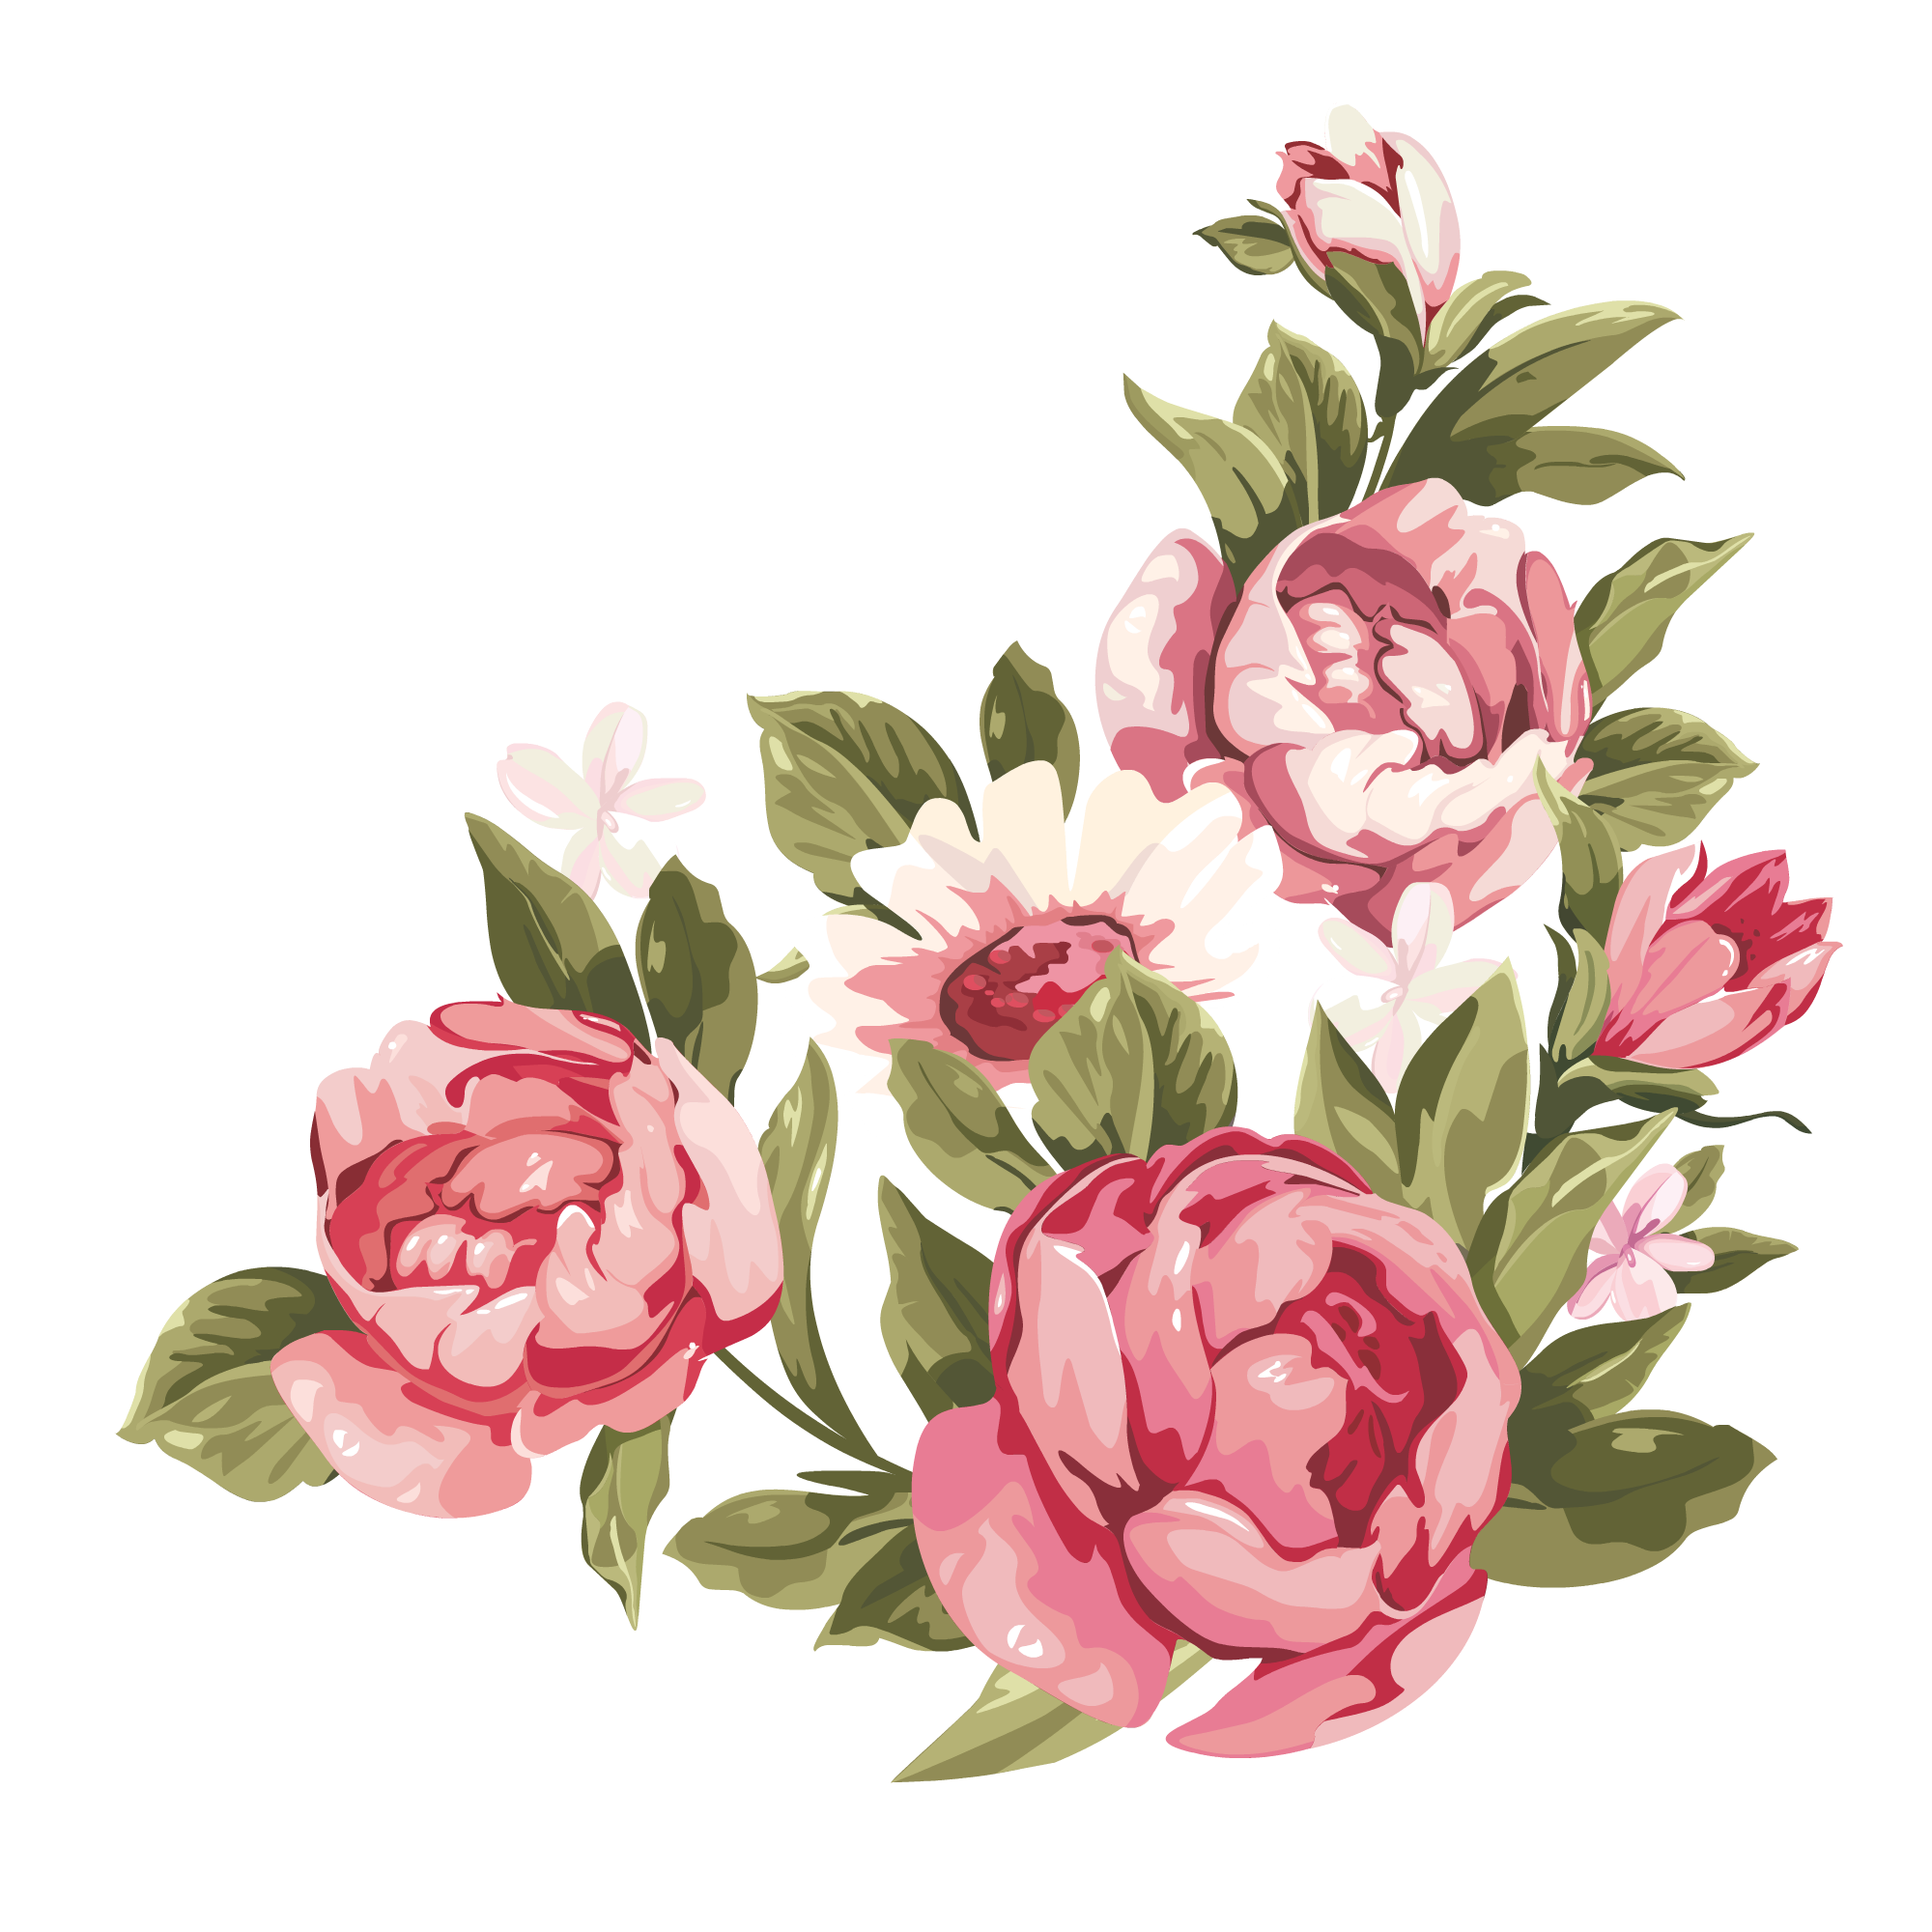 Peony crown clipart png black and white How To Distress Furniture With Vinegar | Pinterest | White lace ... png black and white